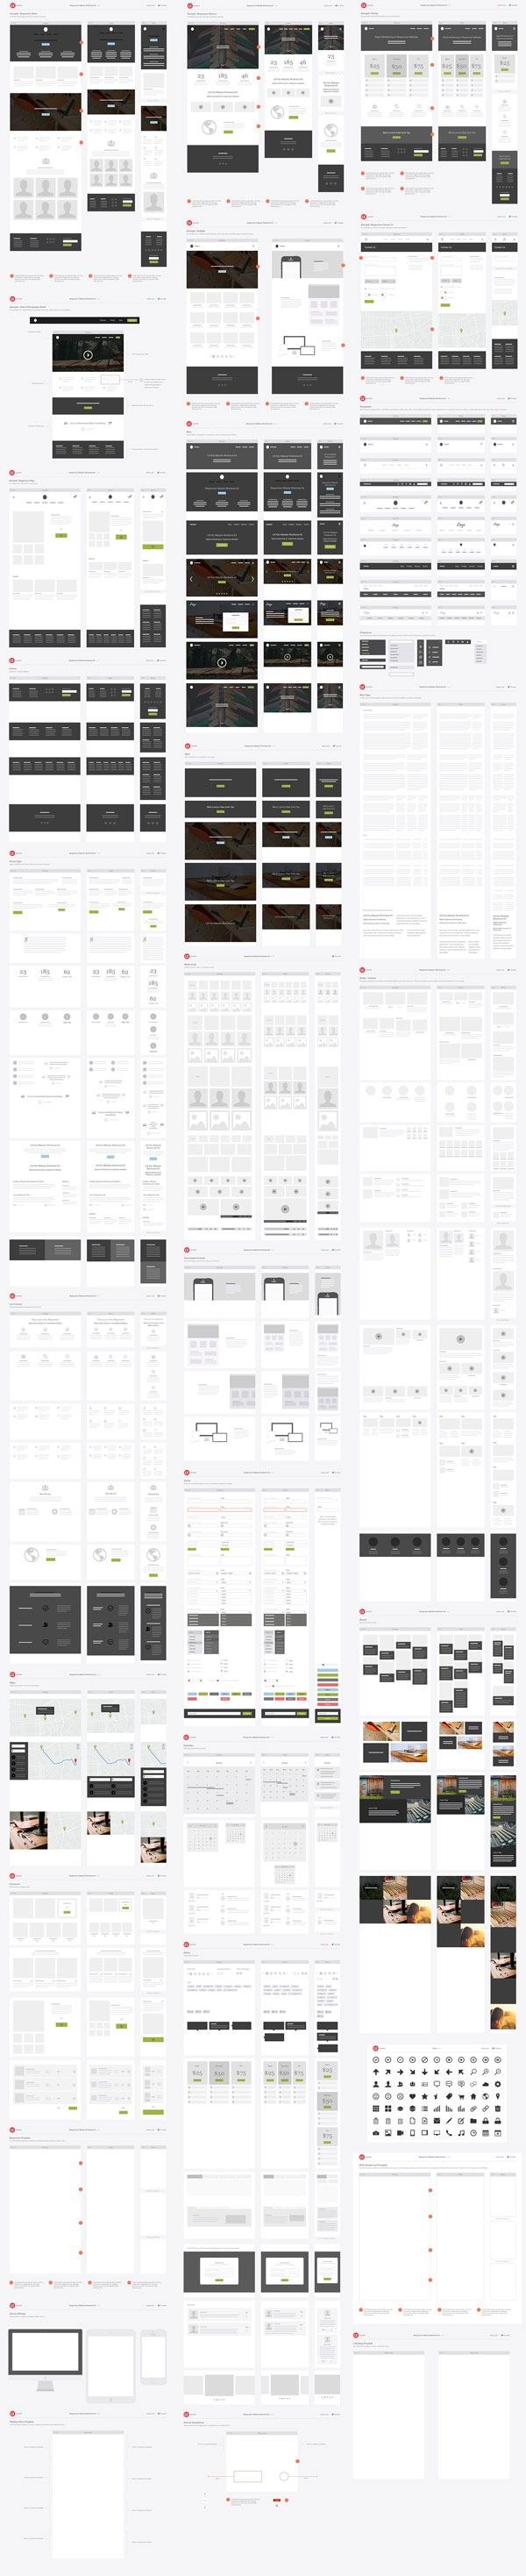 A responsive website wireframe kit developed by the team of UX Kits.